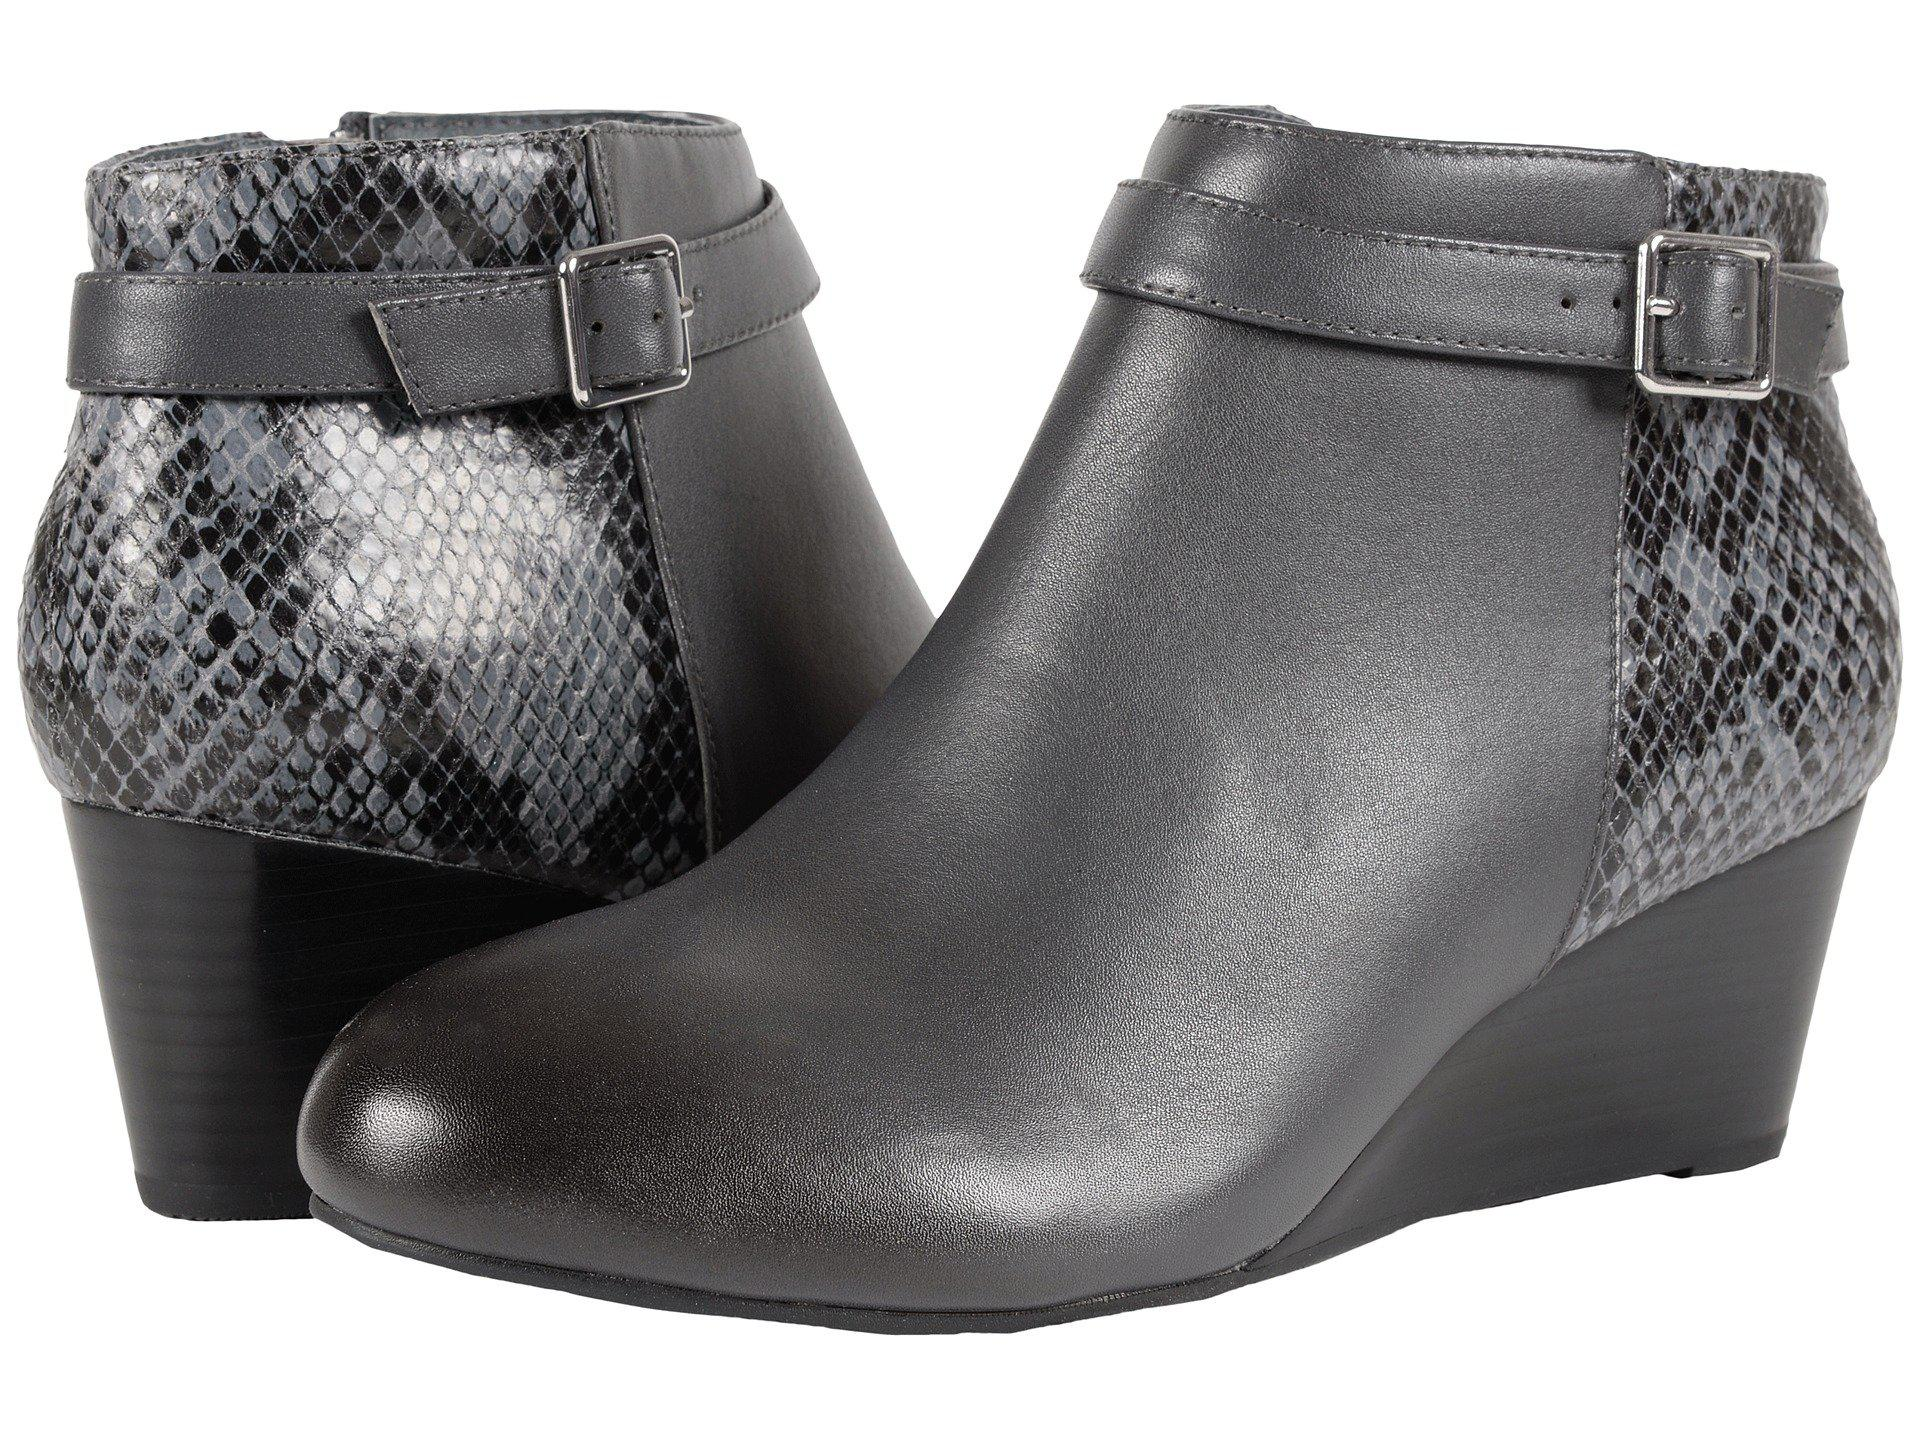 335a17a65c99 Lyst - Vionic Elevated Shasta Wedge Boot in Gray - Save ...